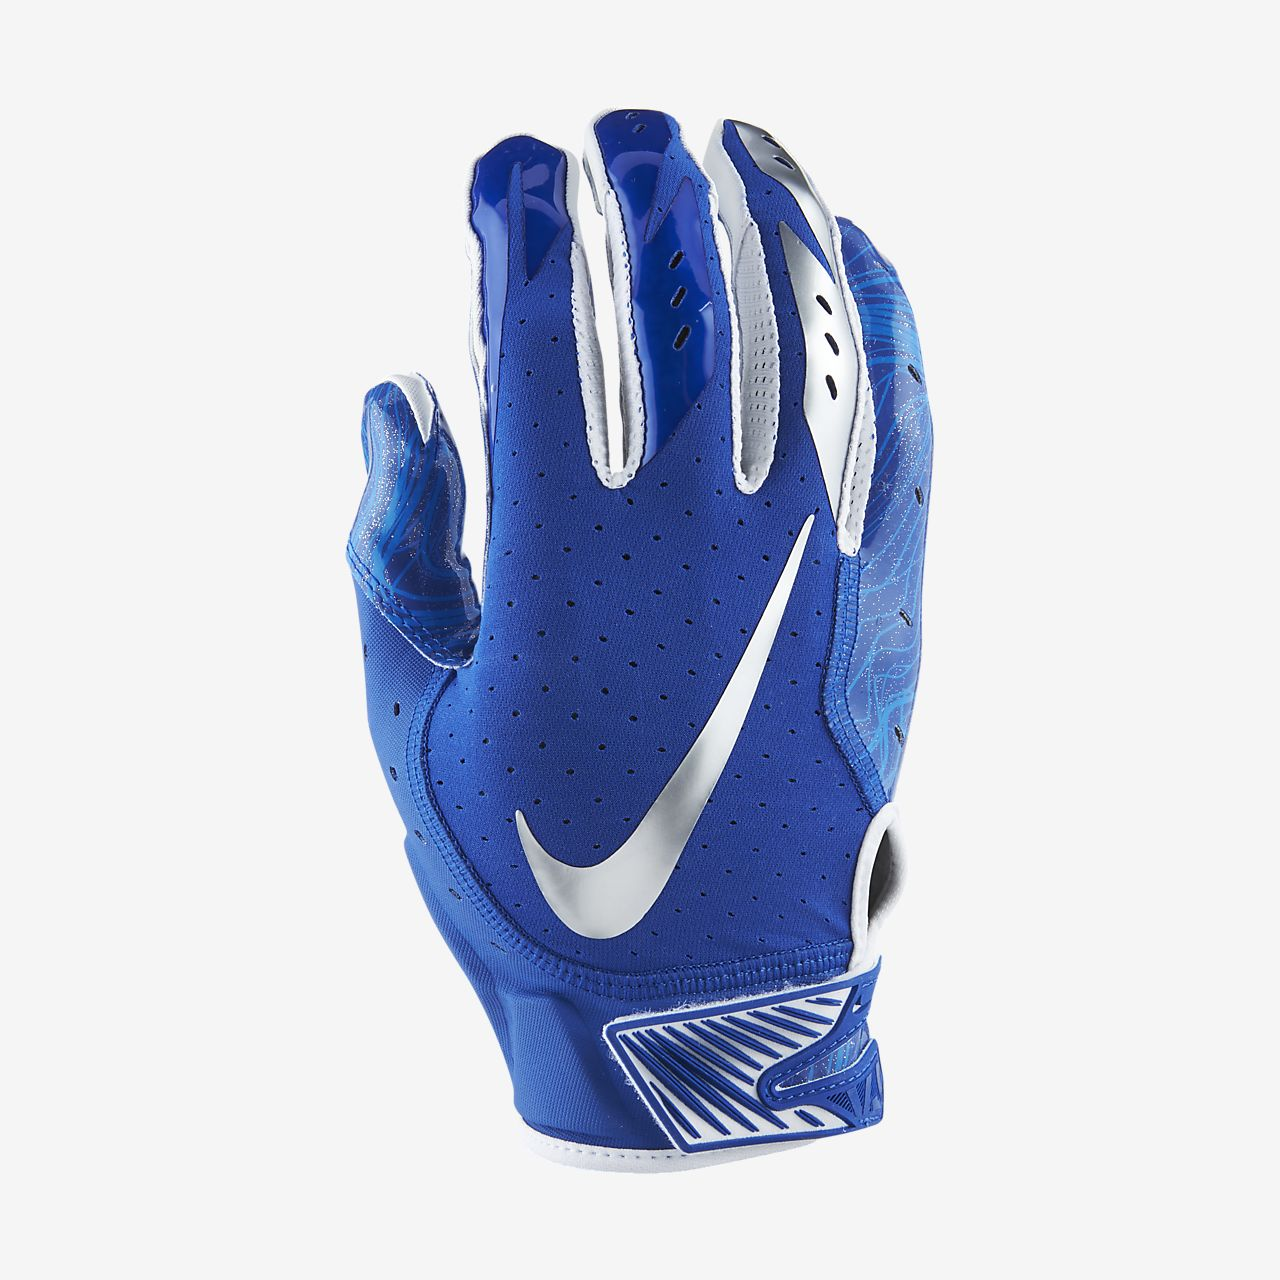 Nike Football Gloves: Nike Vapor Jet 5.0 Men's Football Gloves. Nike.com